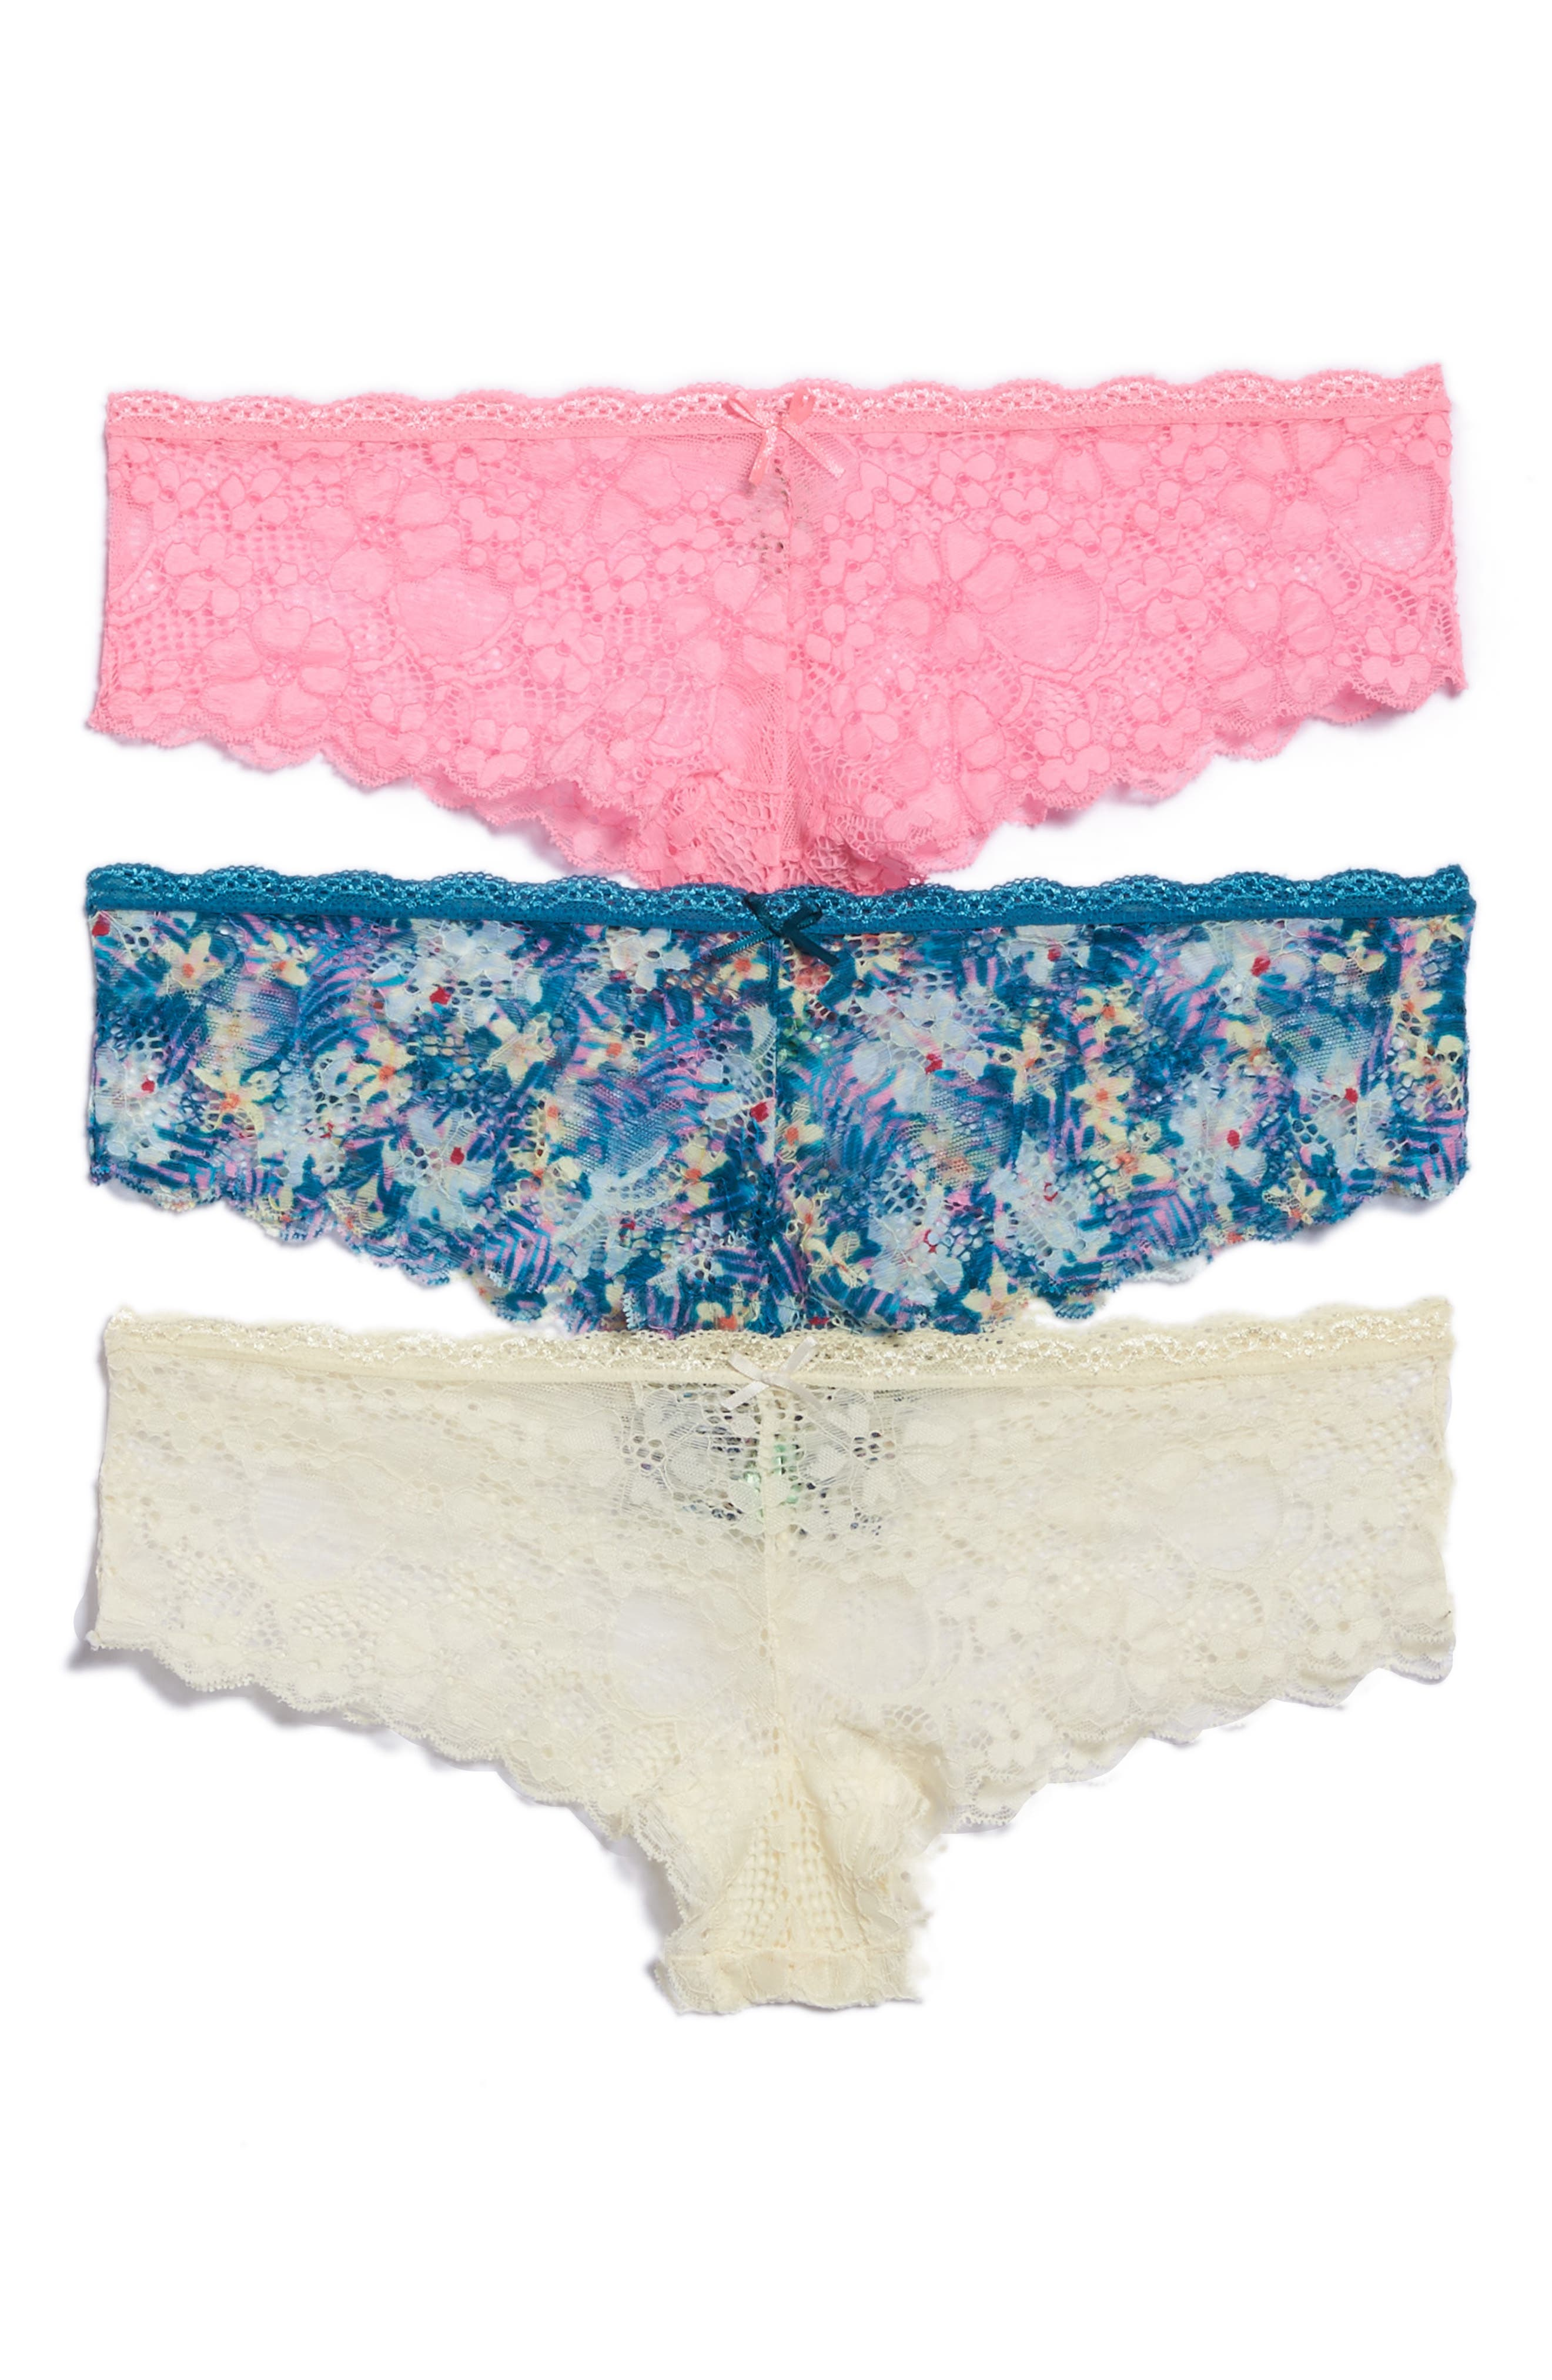 Main Image - Honeydew Intimates 3-Pack Lace Hipster Panties